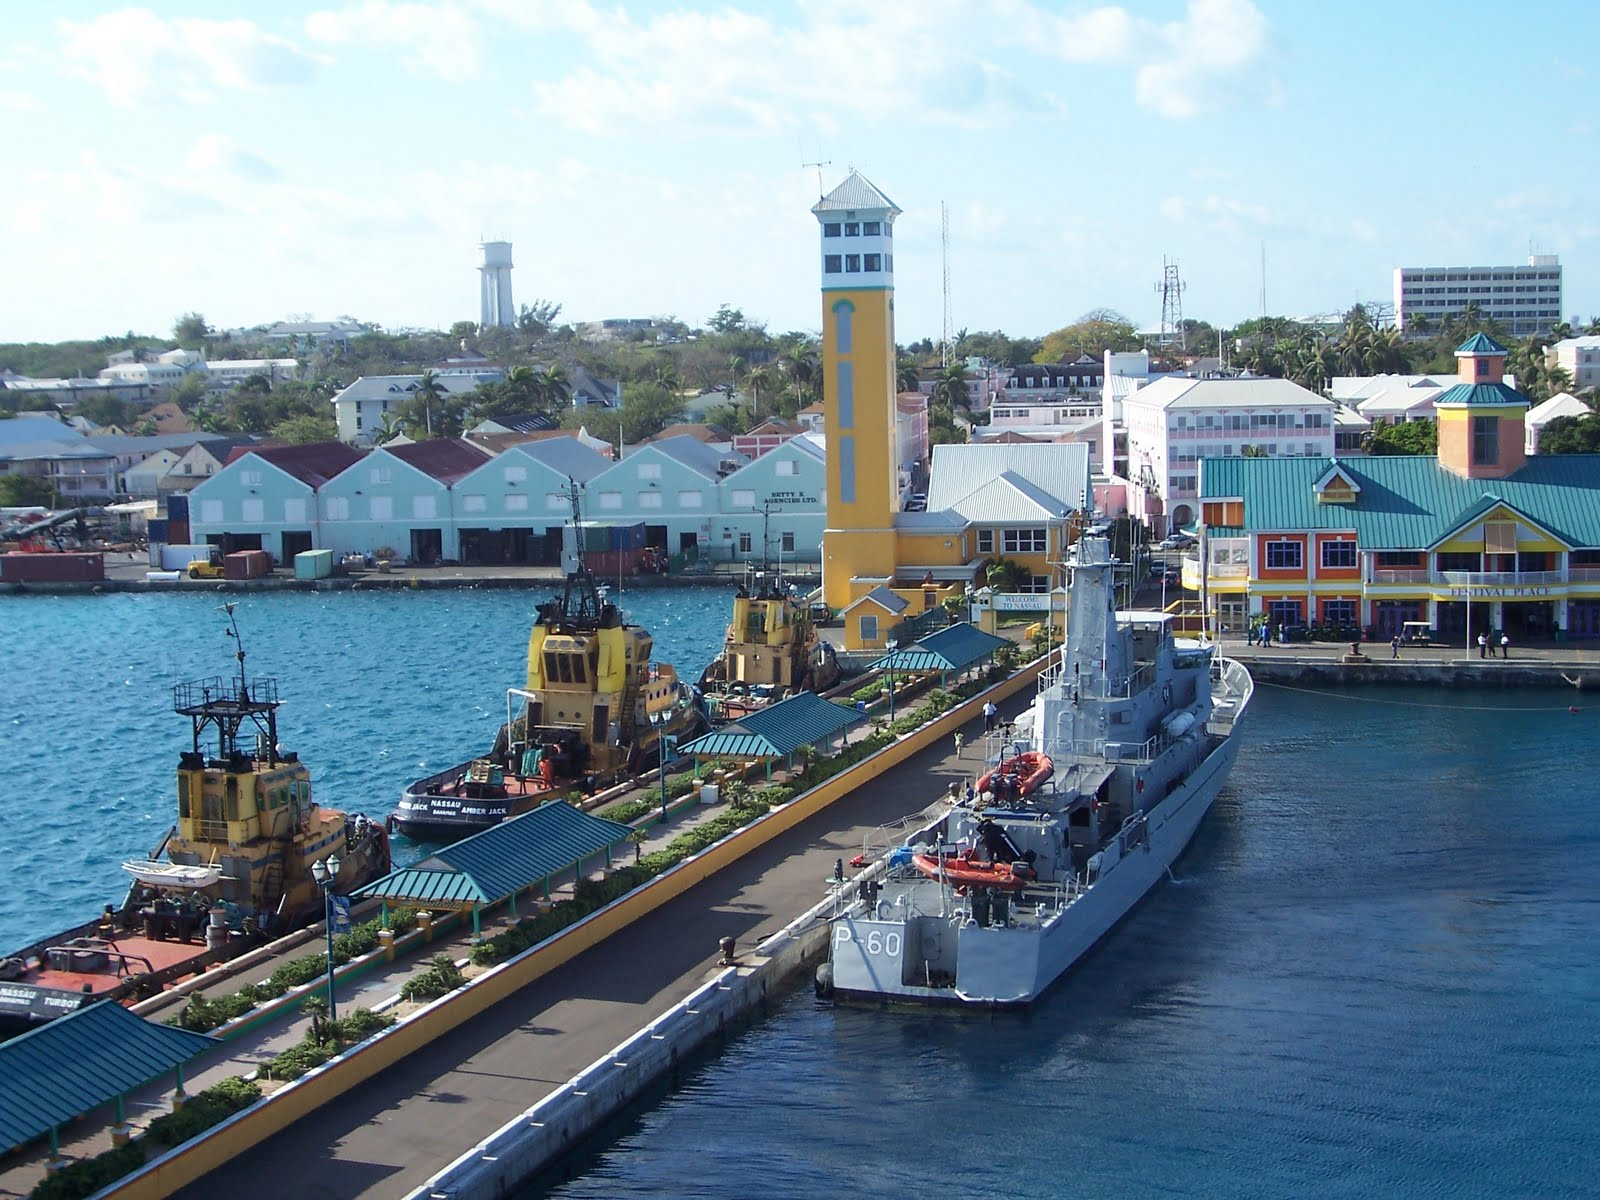 Williams family disney cruise line blackbeard 39 s cay nassau bahamas - Cruise port nassau bahamas ...